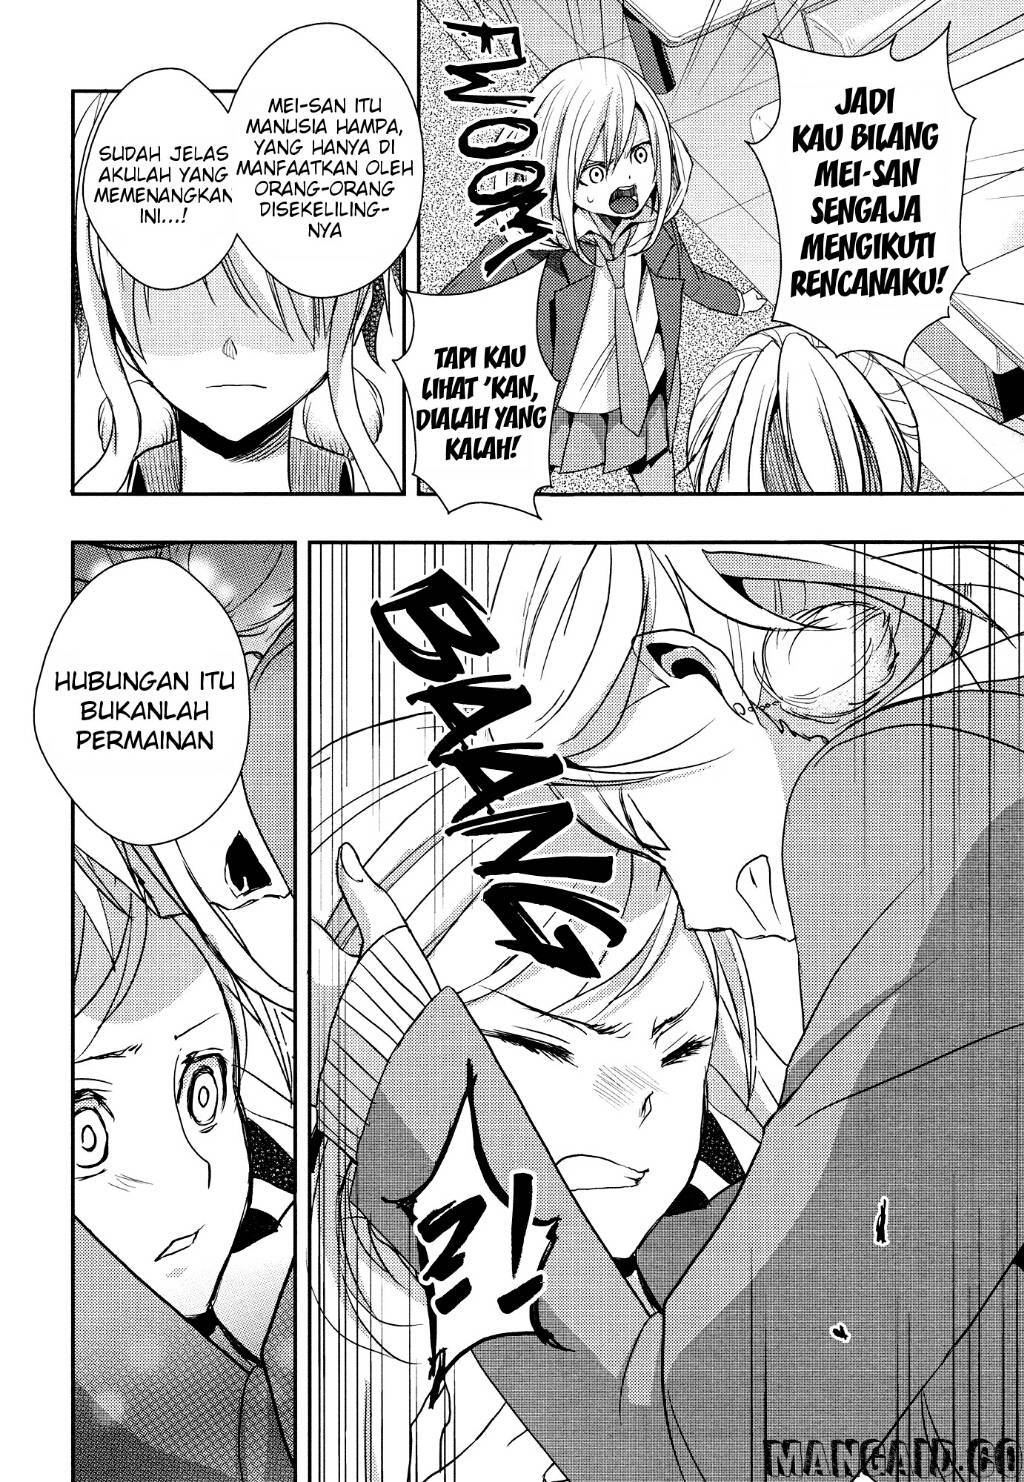 Baca Komik Citrus Chapter 12 Bahasa Indonesia